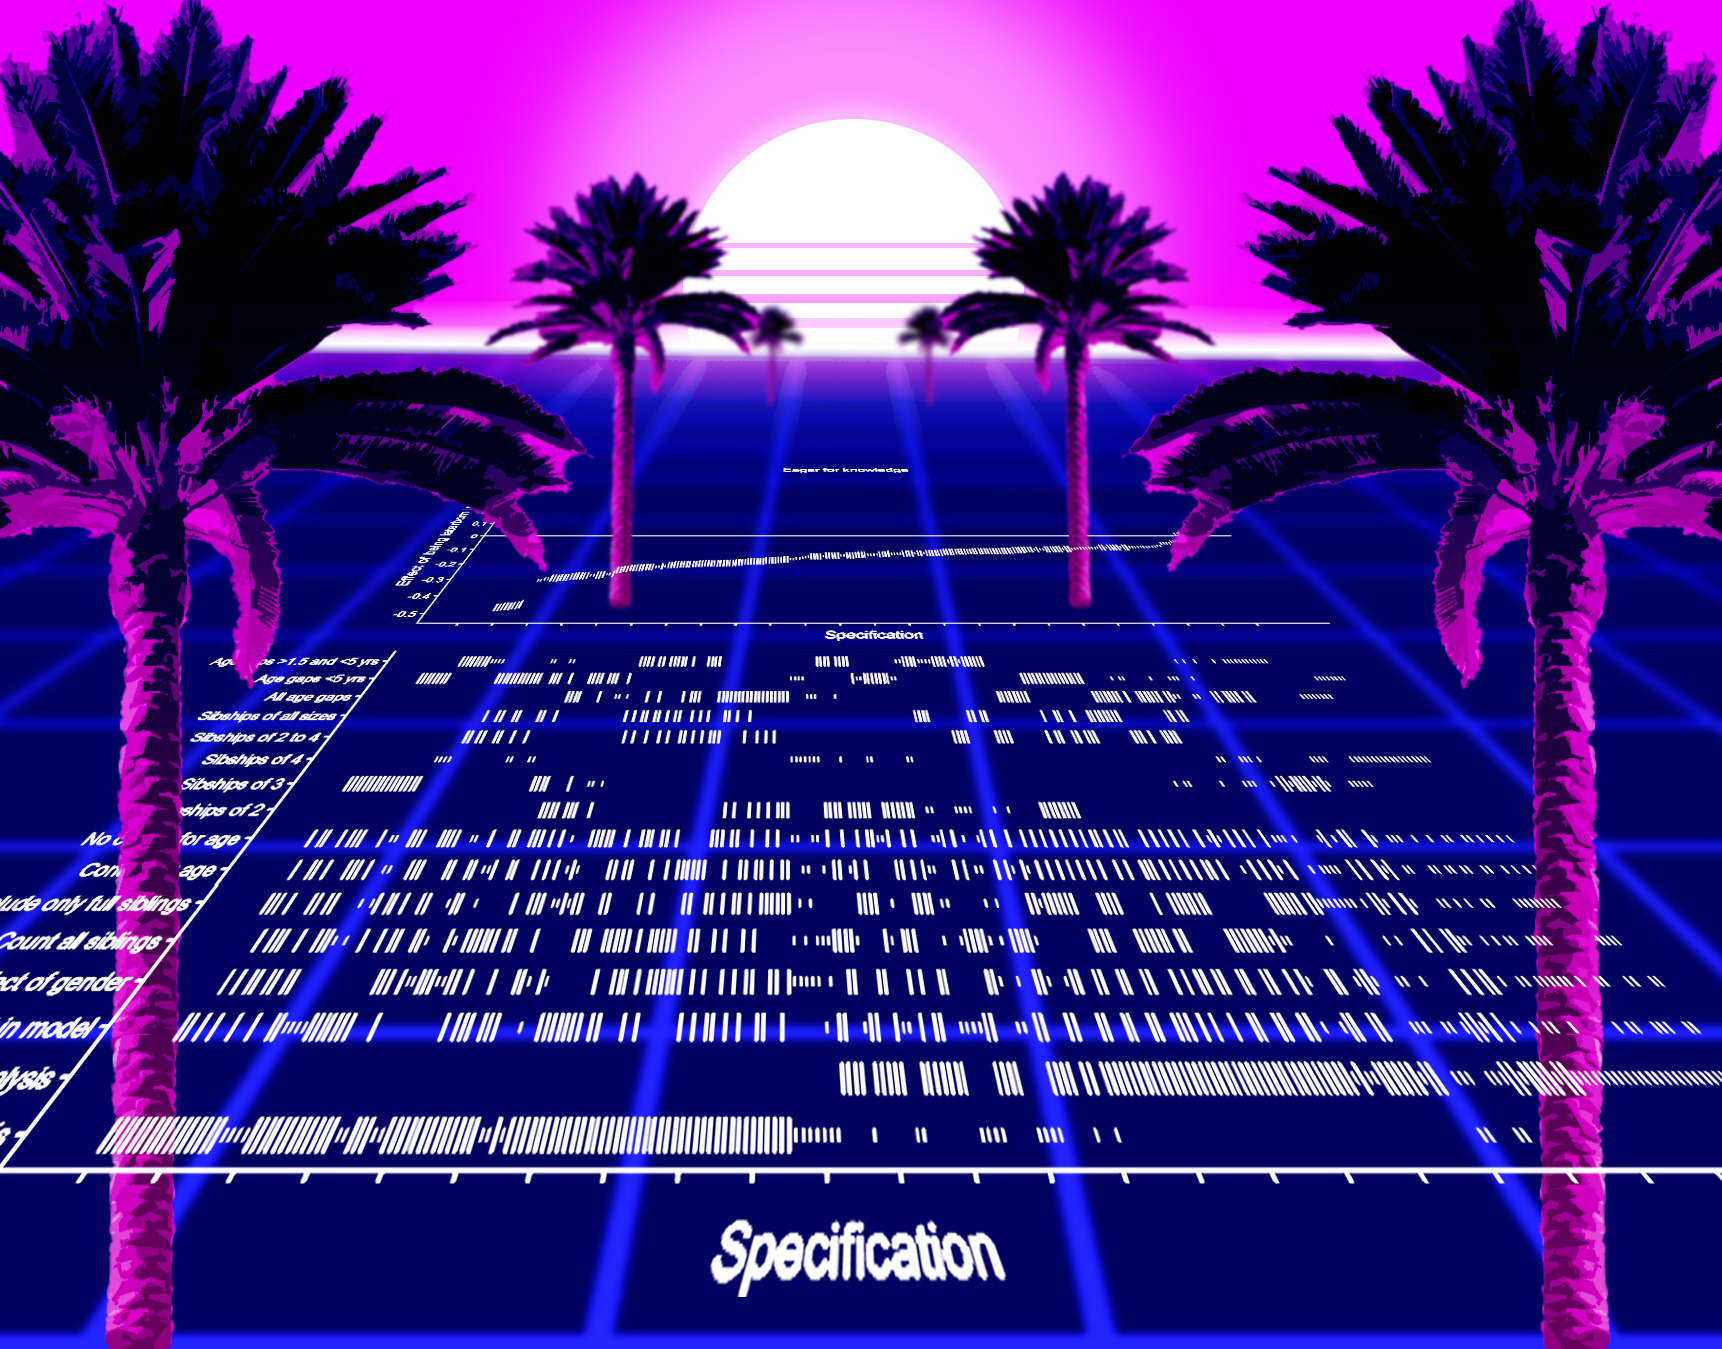 A specification curve plot presented in outrun-style with an underlying grid and palm trees